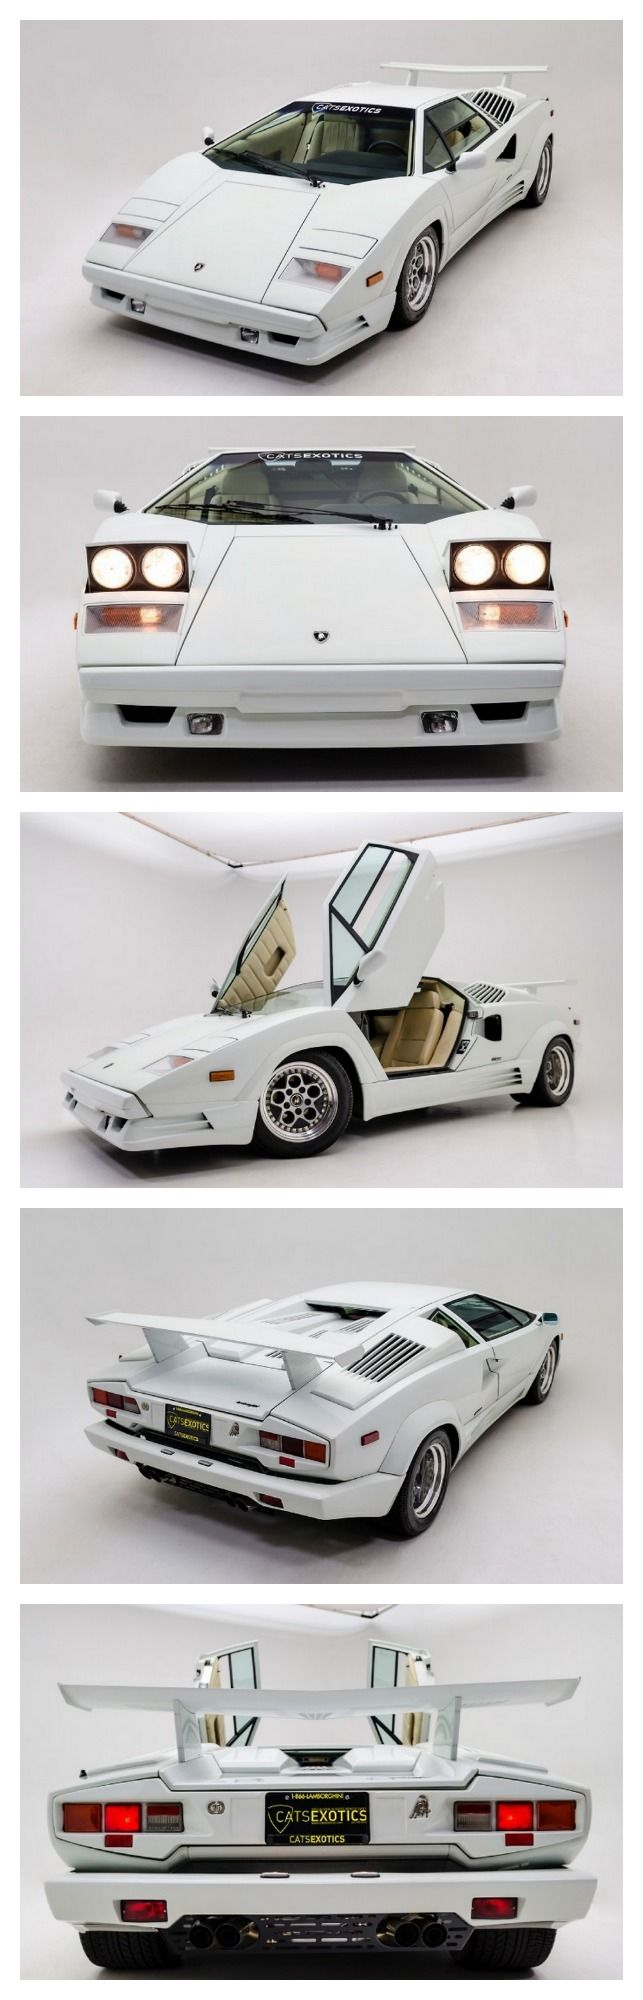 Stunning 1989 Lamborghini Countach 25th Anniversary Edition finished in Stunning Bianco White over Bone Leather interior. #WildWednesday